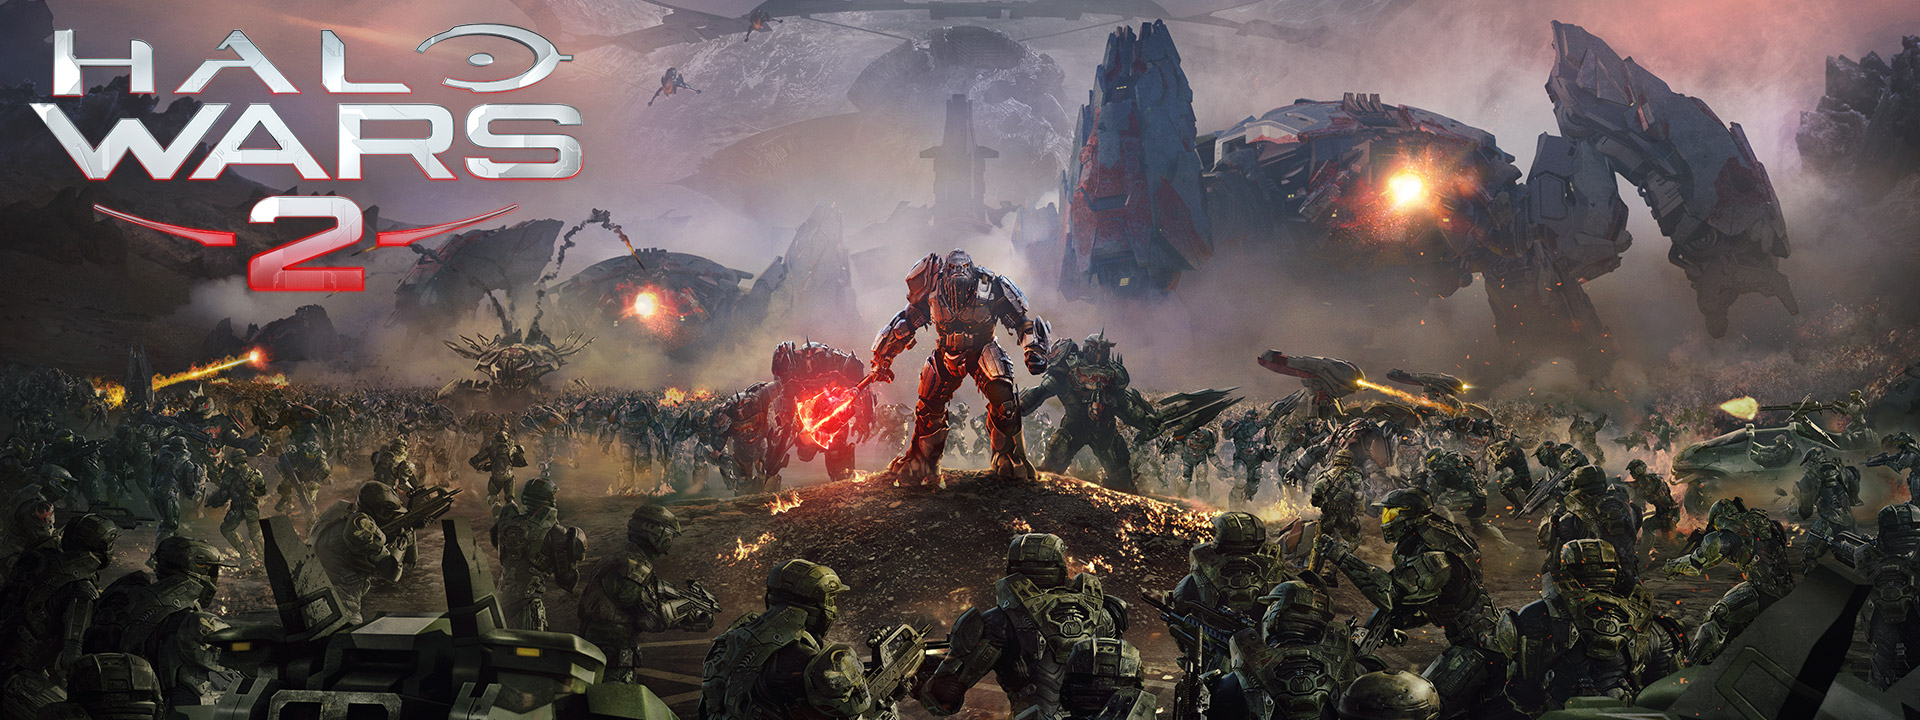 HQ Halo Wars Wallpapers | File 458.68Kb